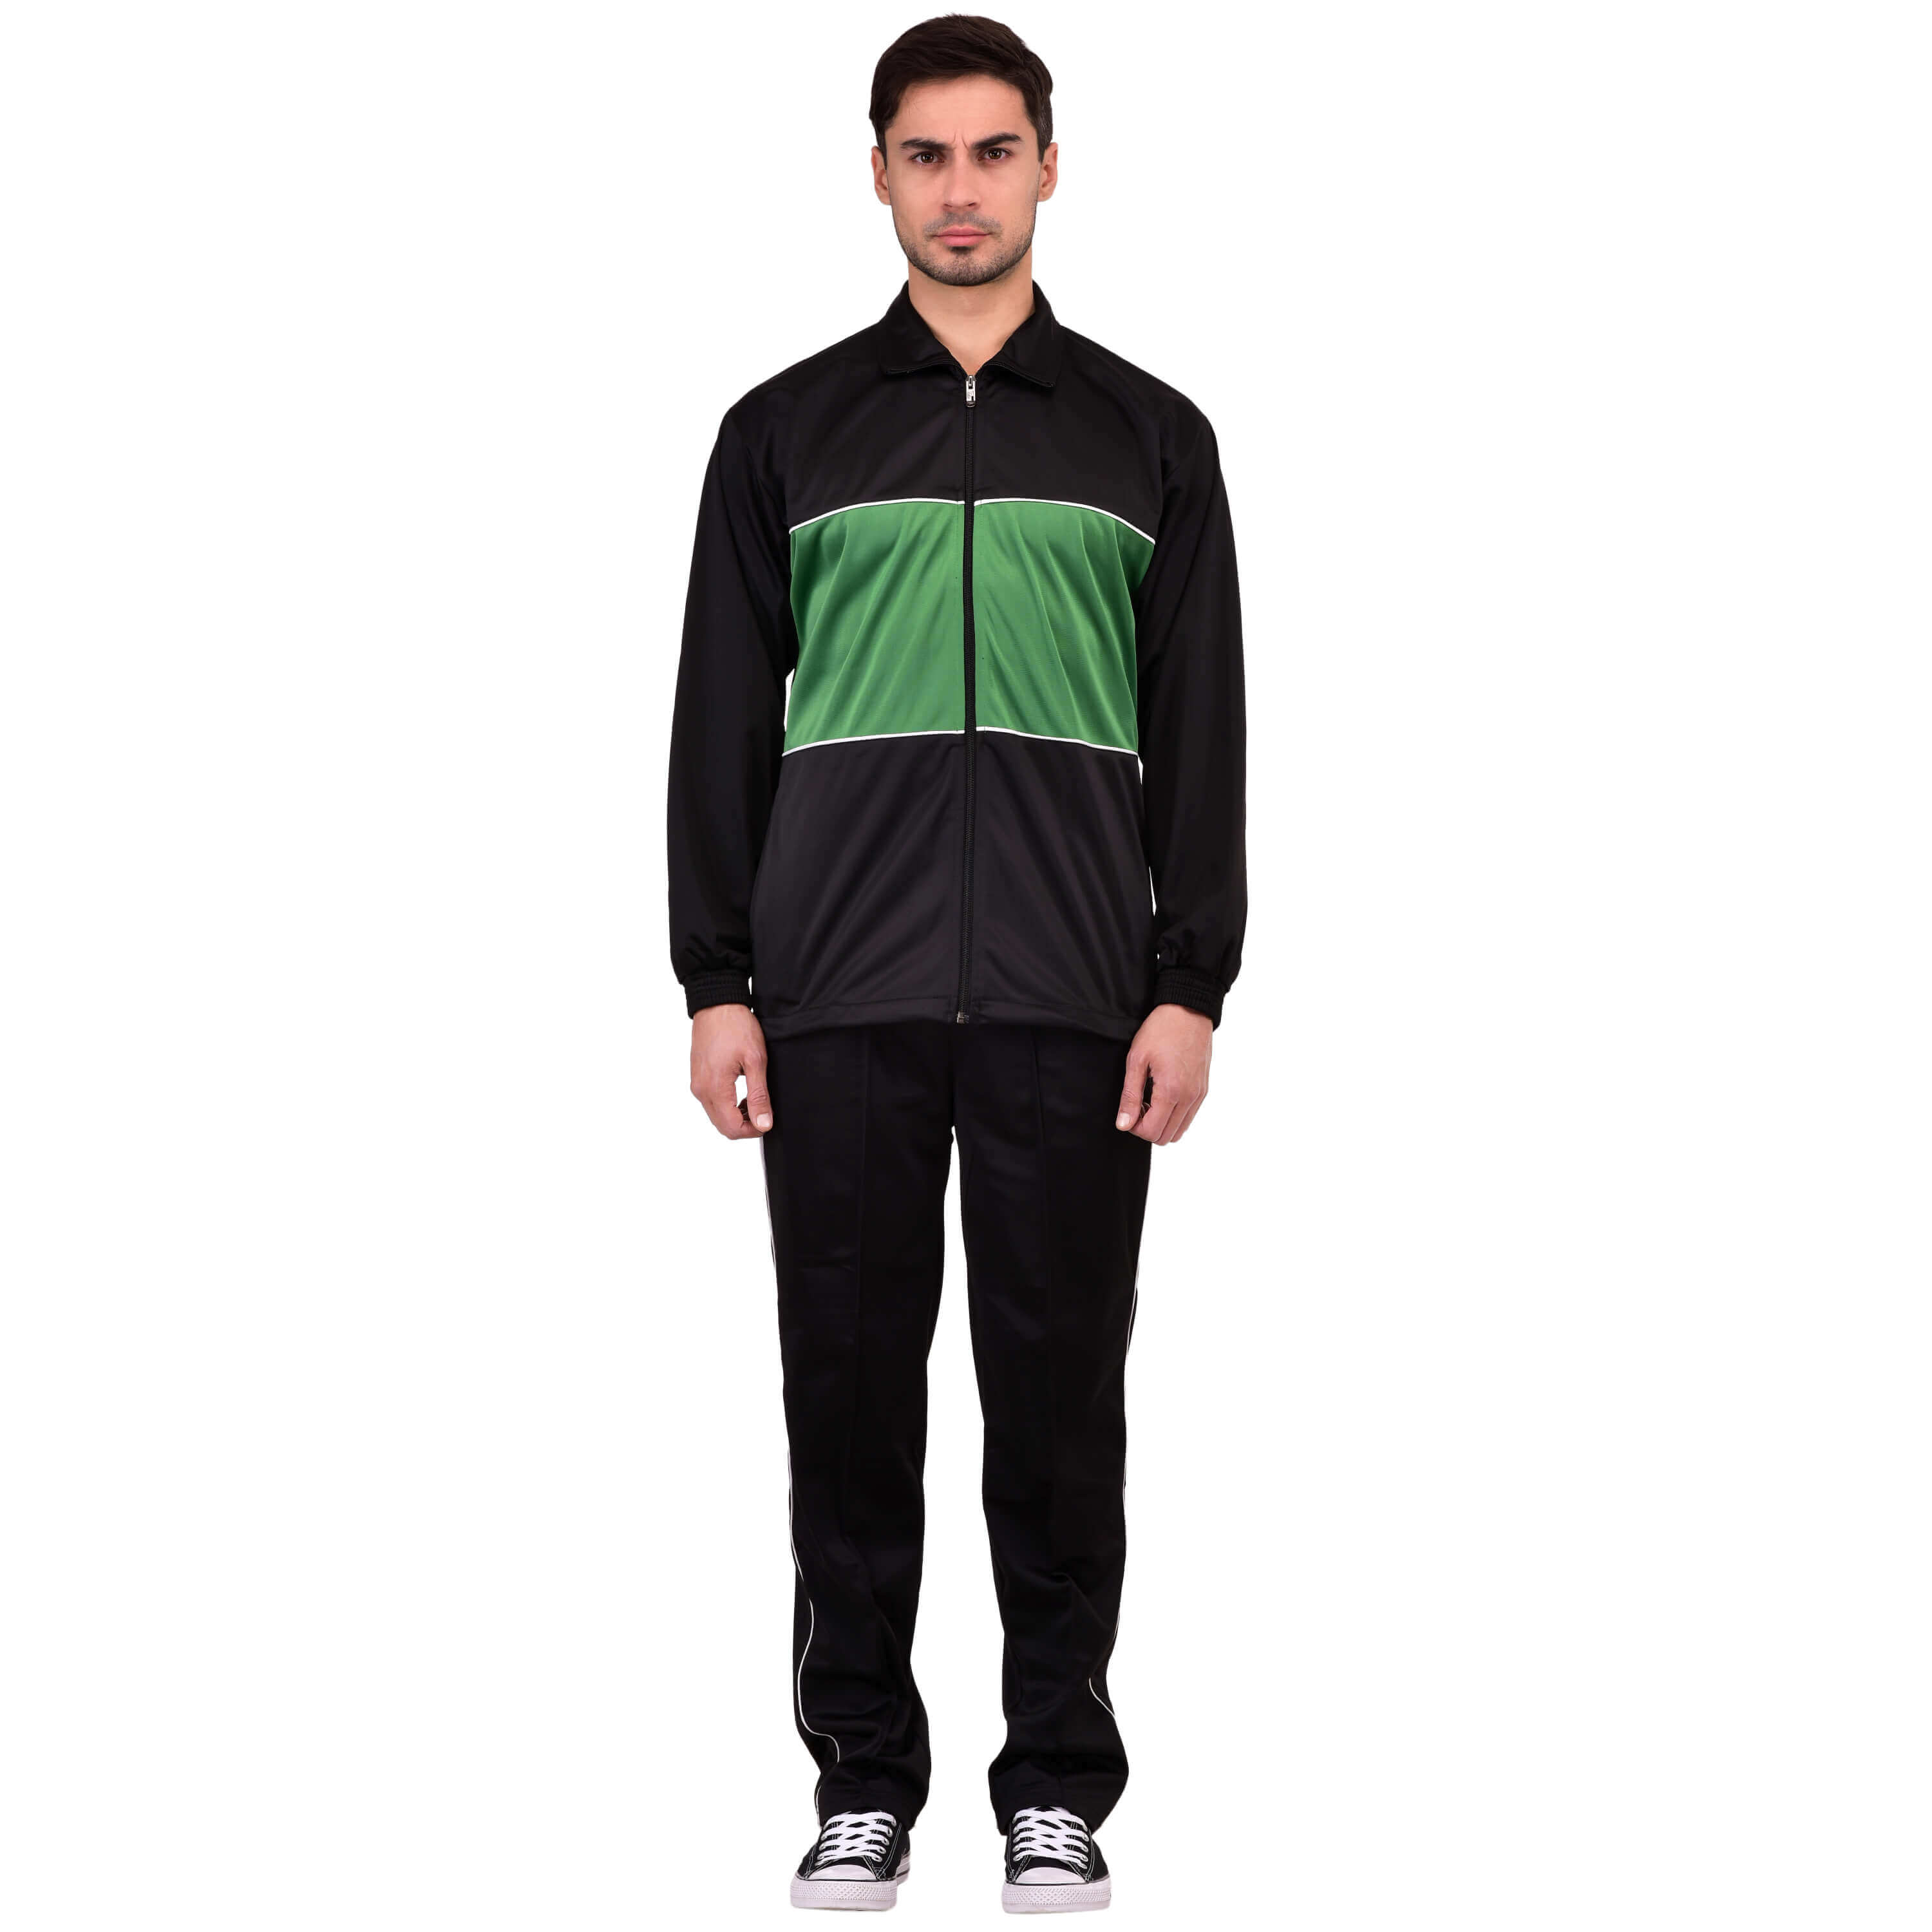 Full Tracksuit Manufacturers in Solapur